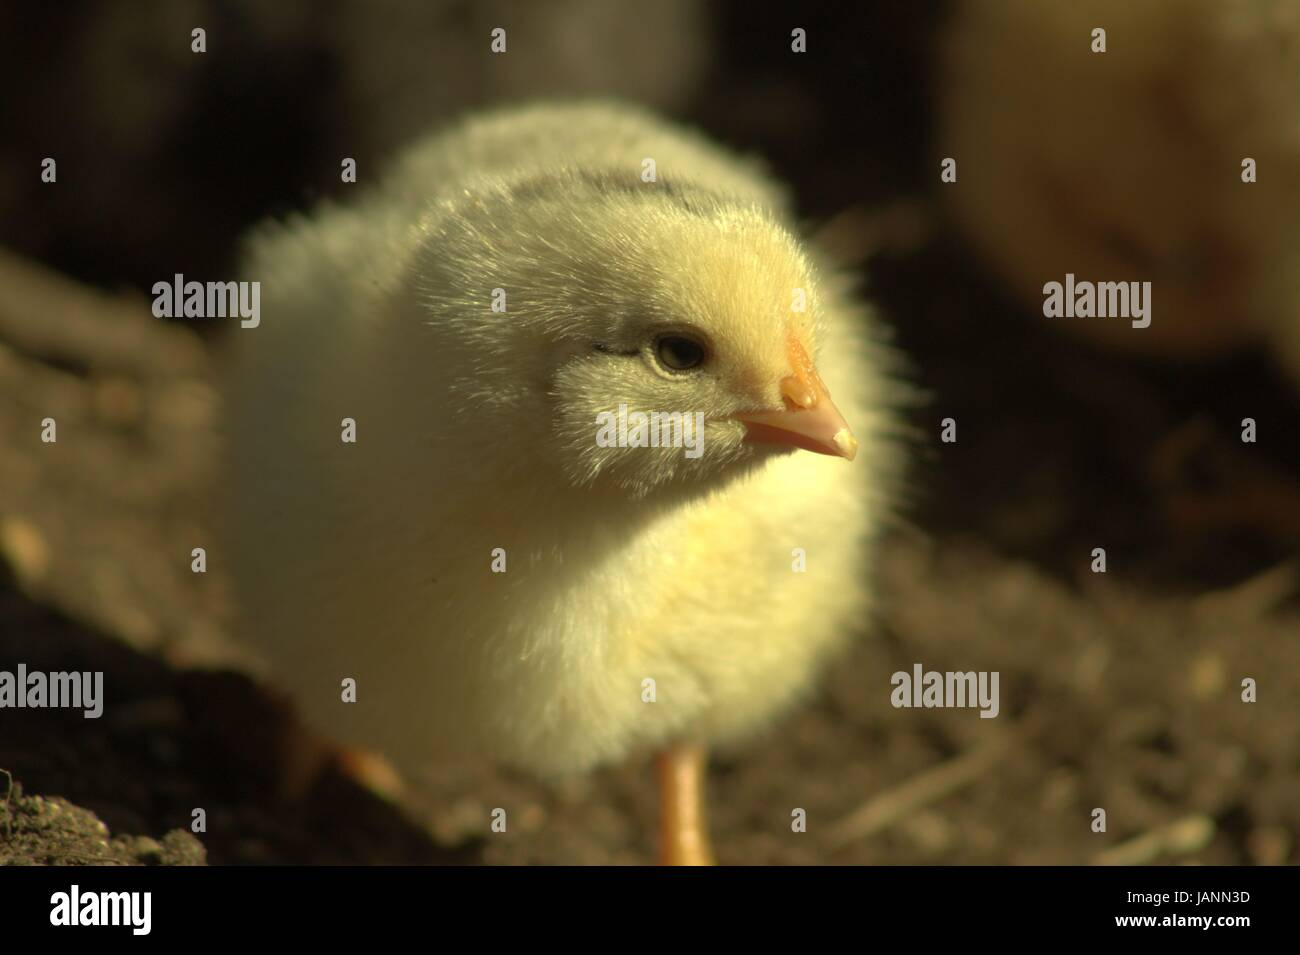 A Two Day Old Baby Chick Outside For The First Time Stock Photo